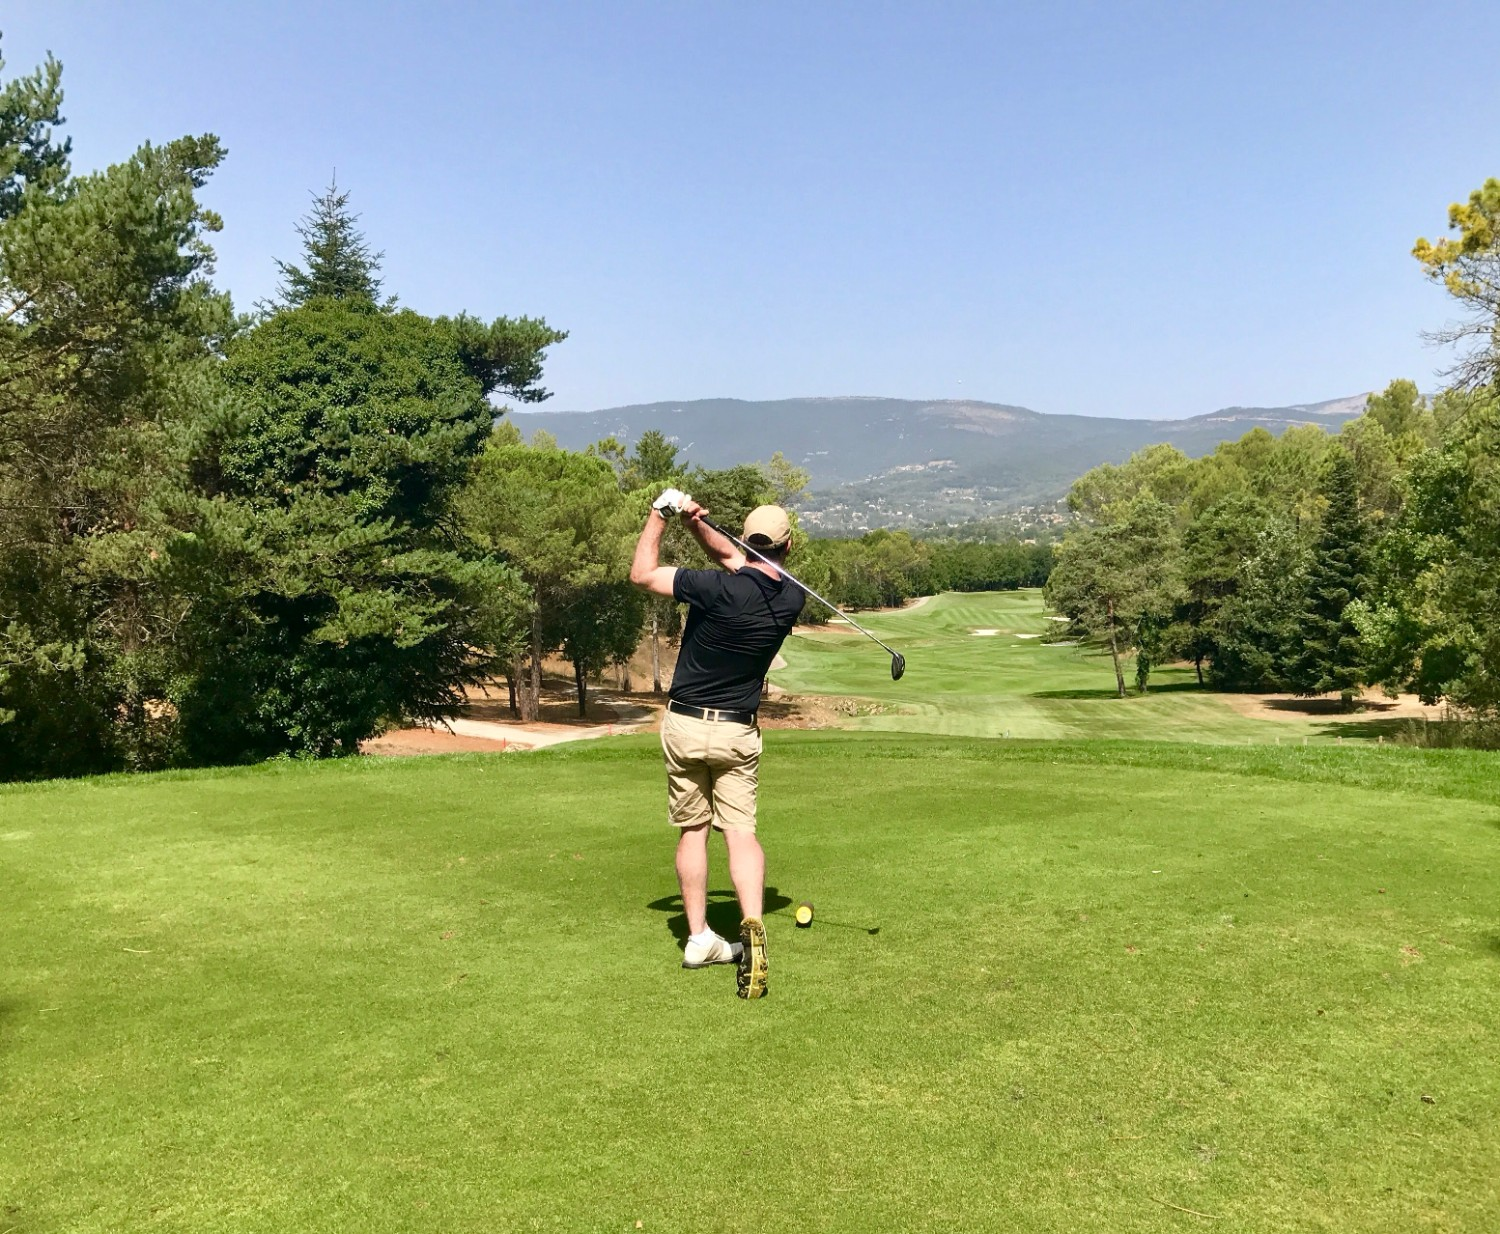 Terre Blanche is a wonderful golf course in the south of france